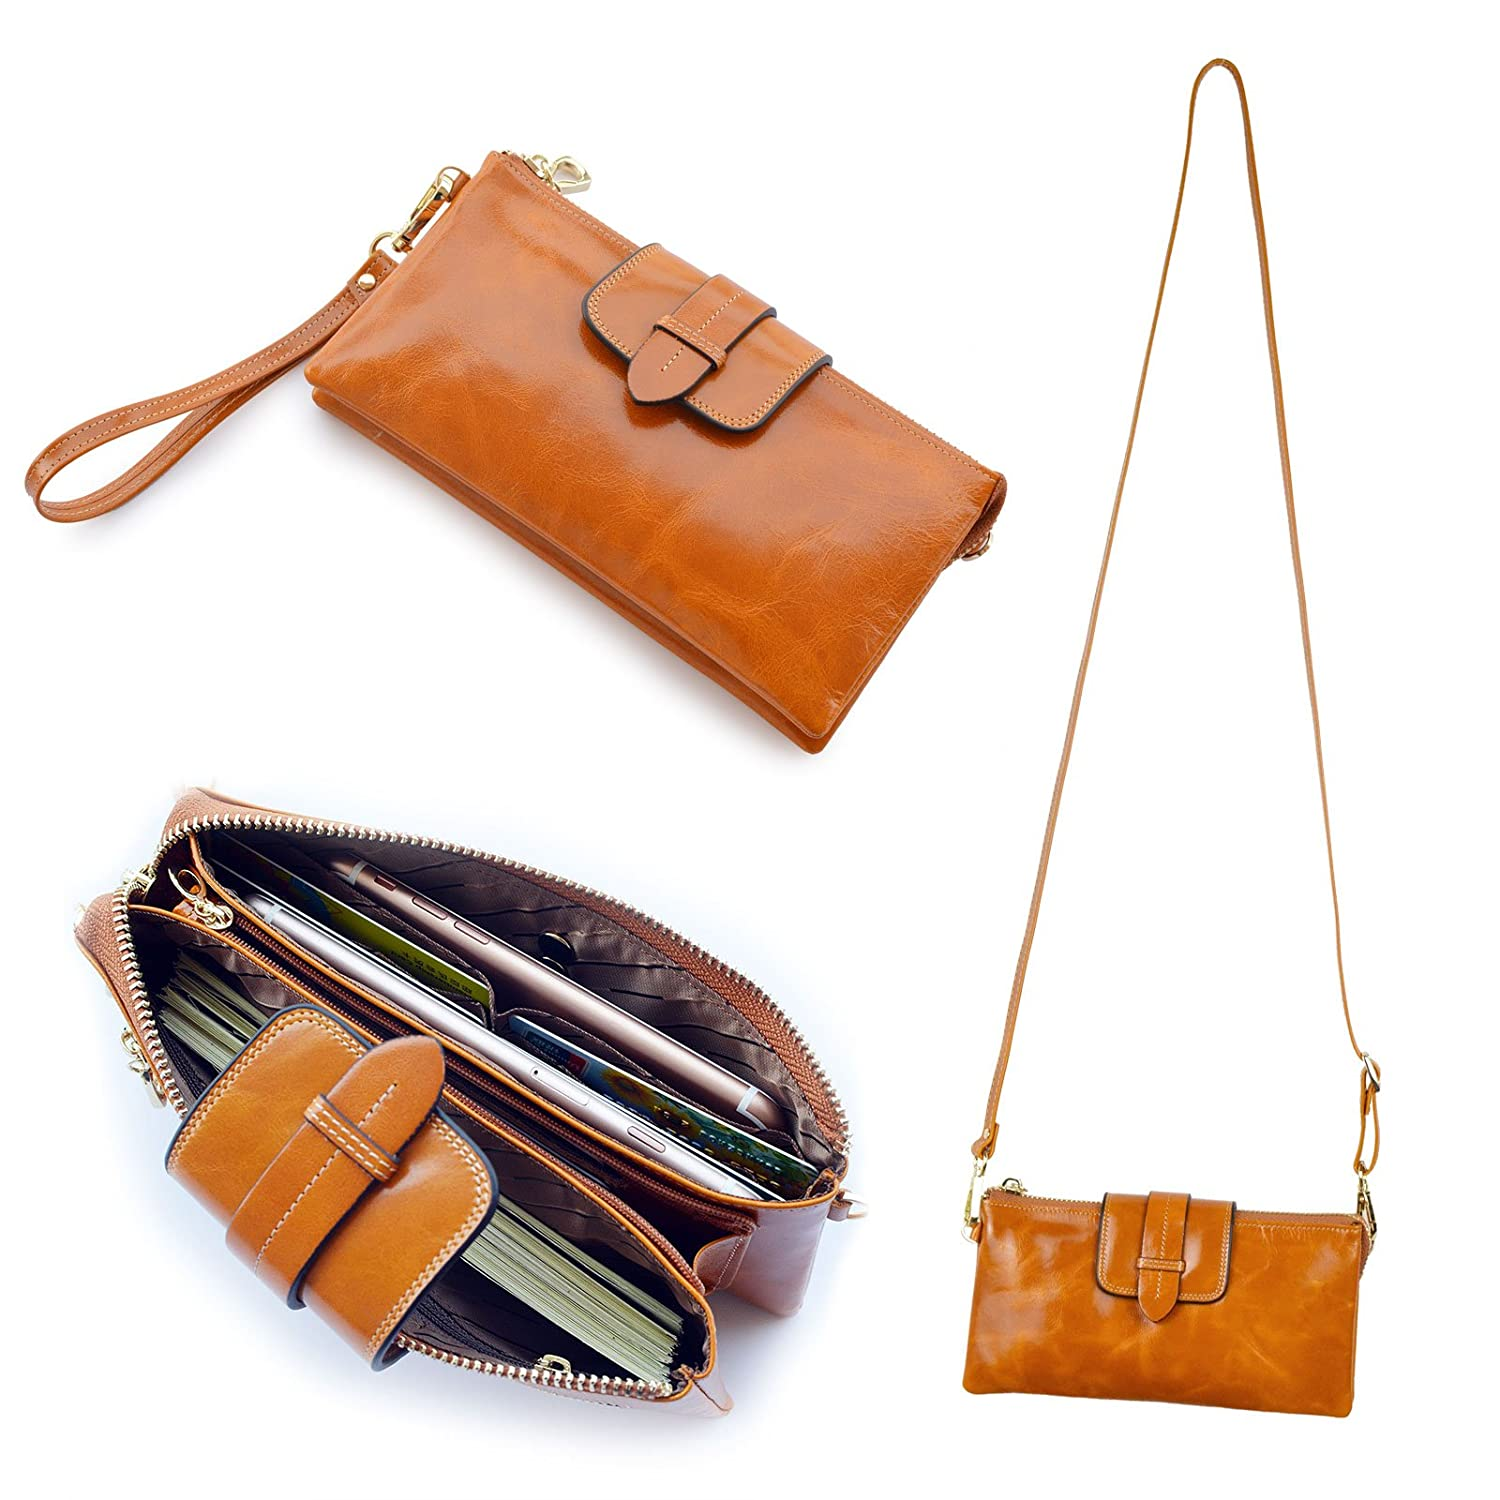 Bveyzi Womens Leather Smartphone Wristlet Clutch Wallet with Shoulder Strap BE8607TAN